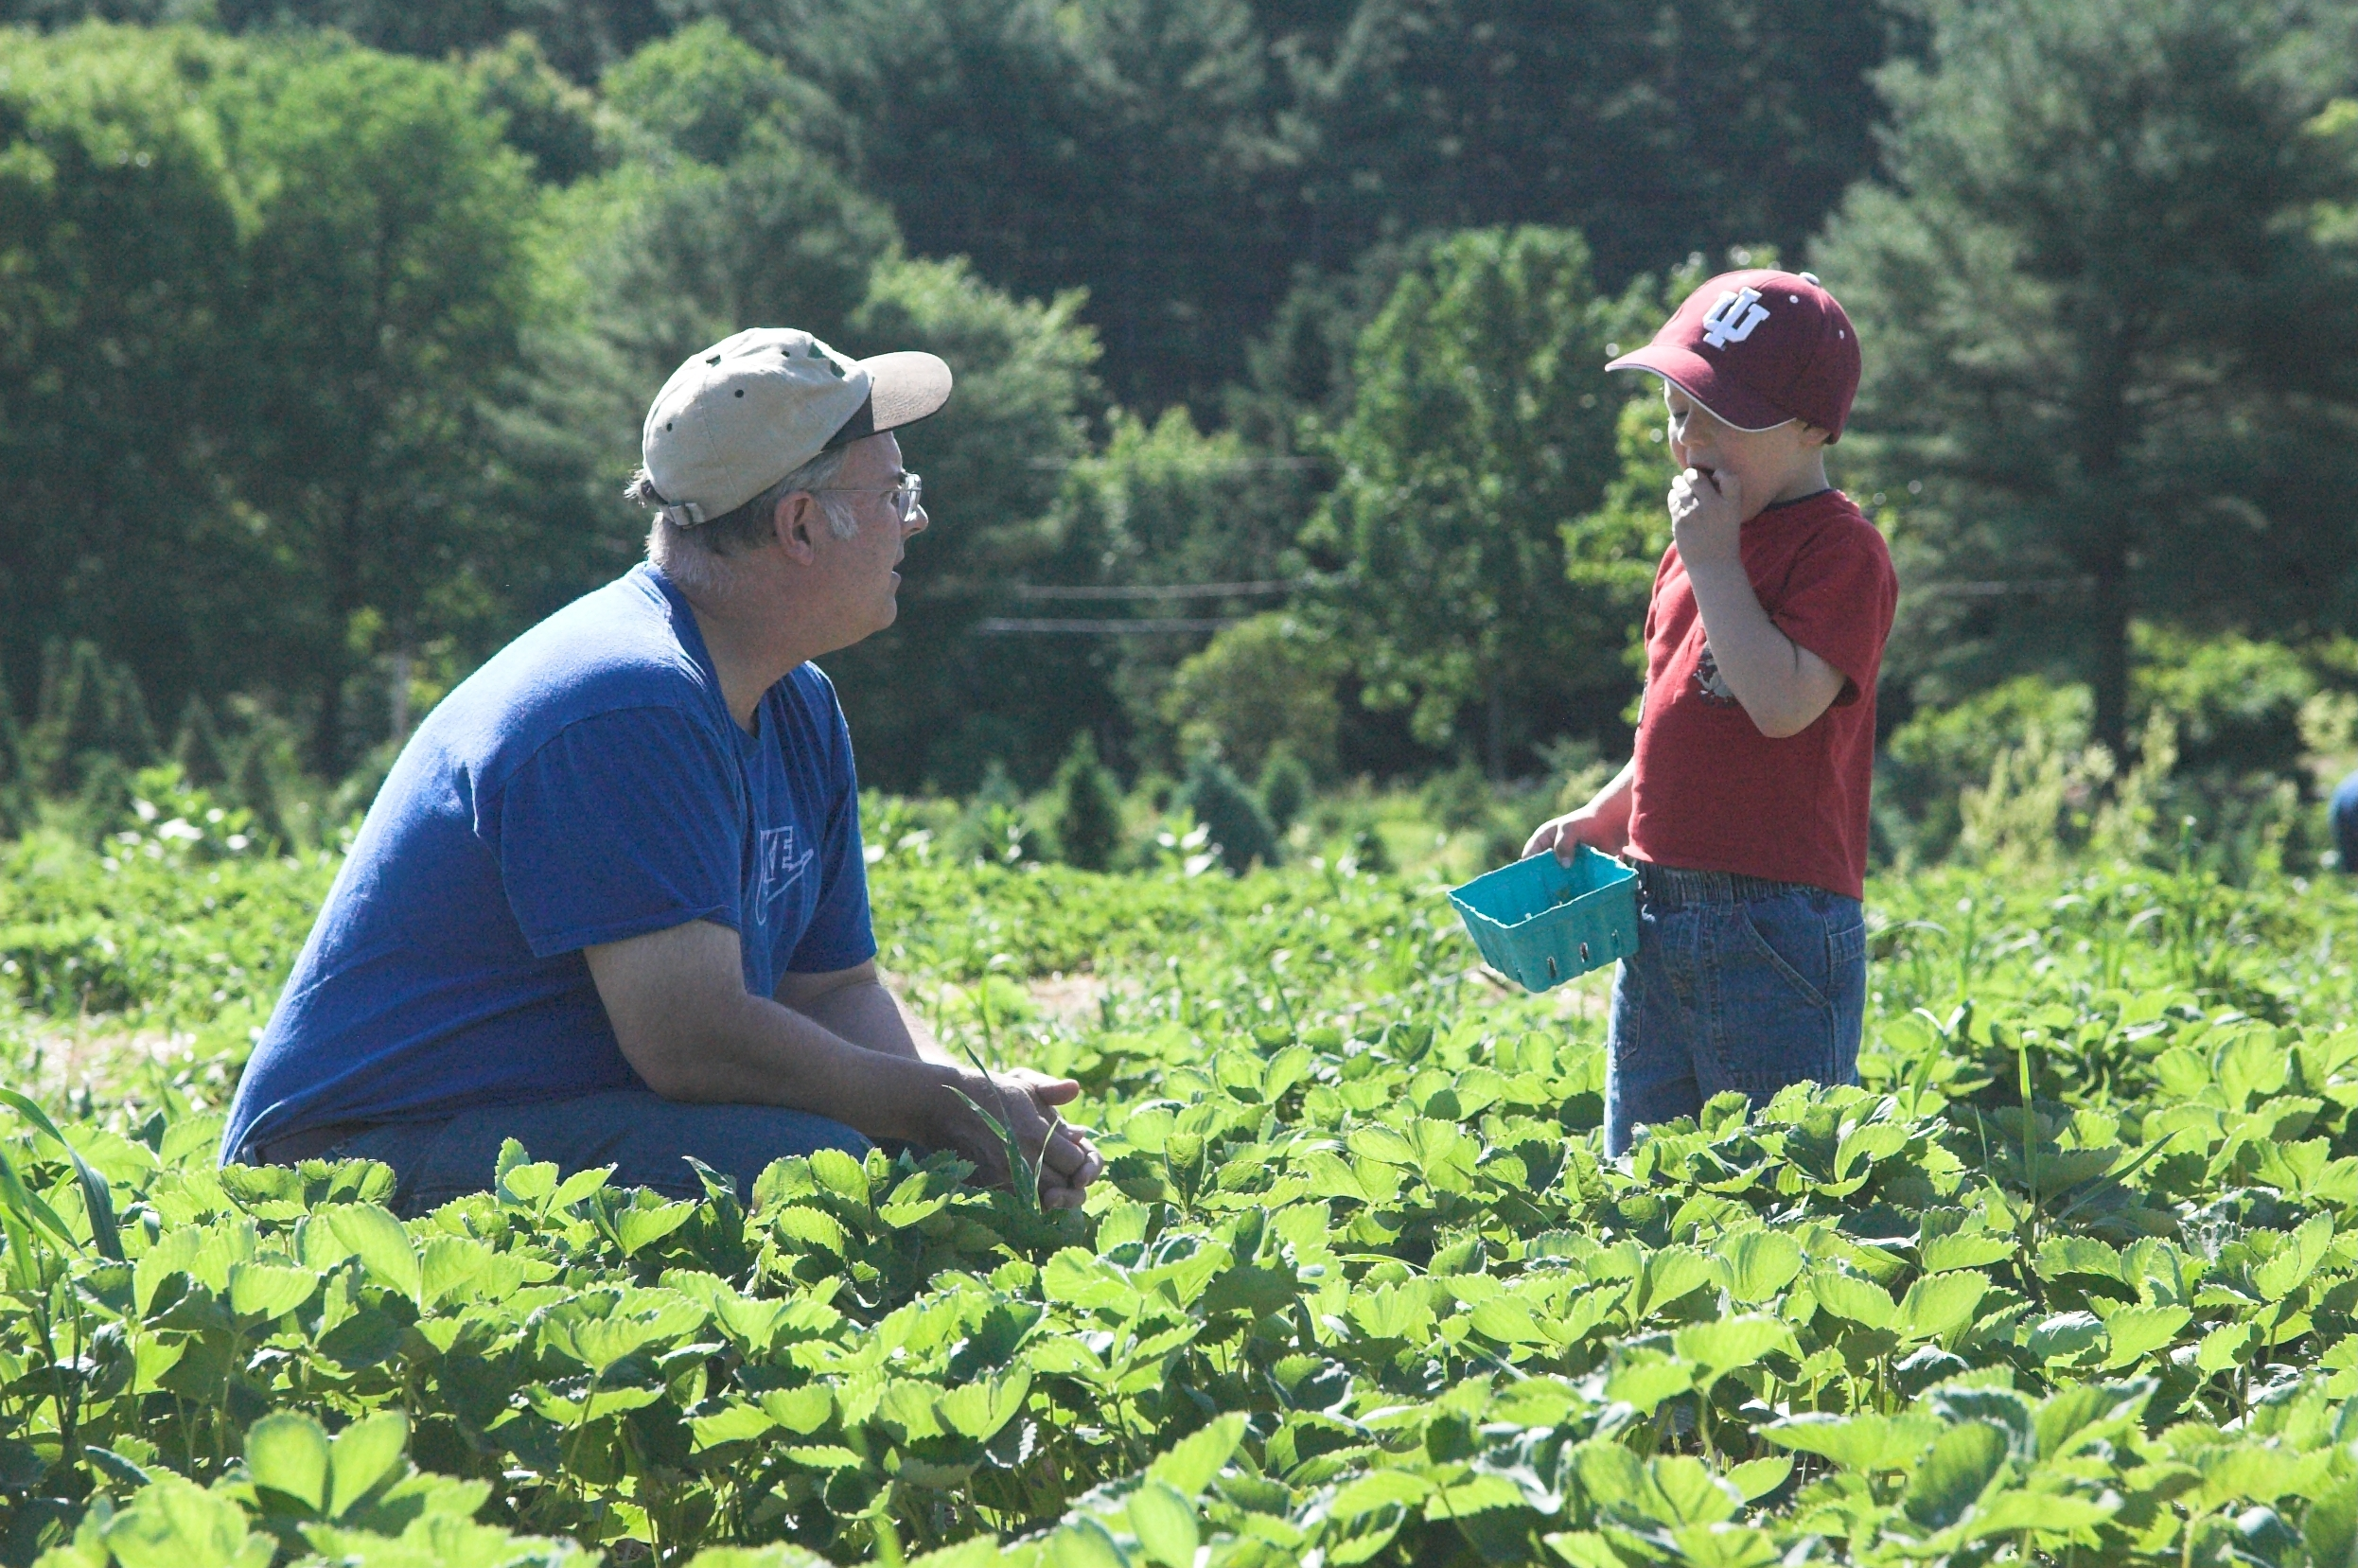 Where to Find Strawberry Picking Farms in Londonderry, N.H.